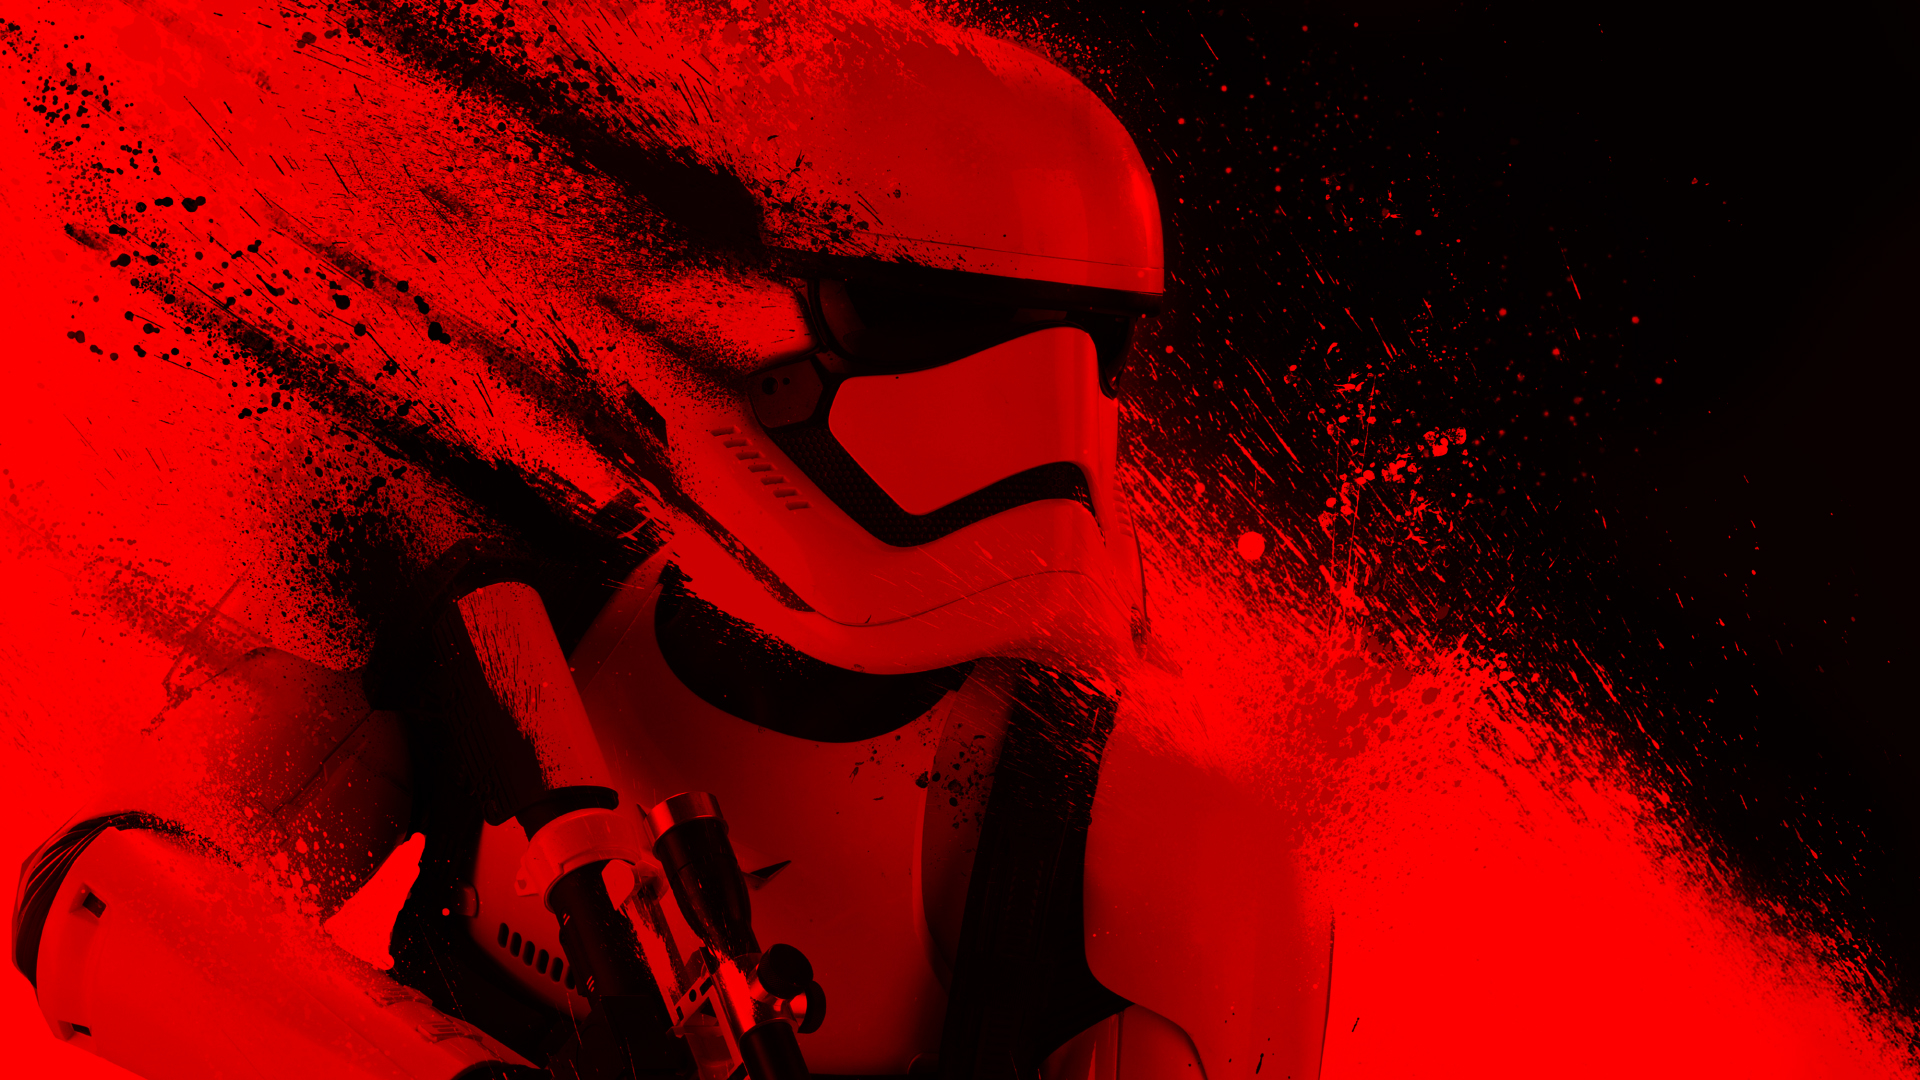 1400x1050 Stormtrooper Cool Star Wars 1400x1050 Resolution Wallpaper Hd Movies 4k Wallpapers Images Photos And Background